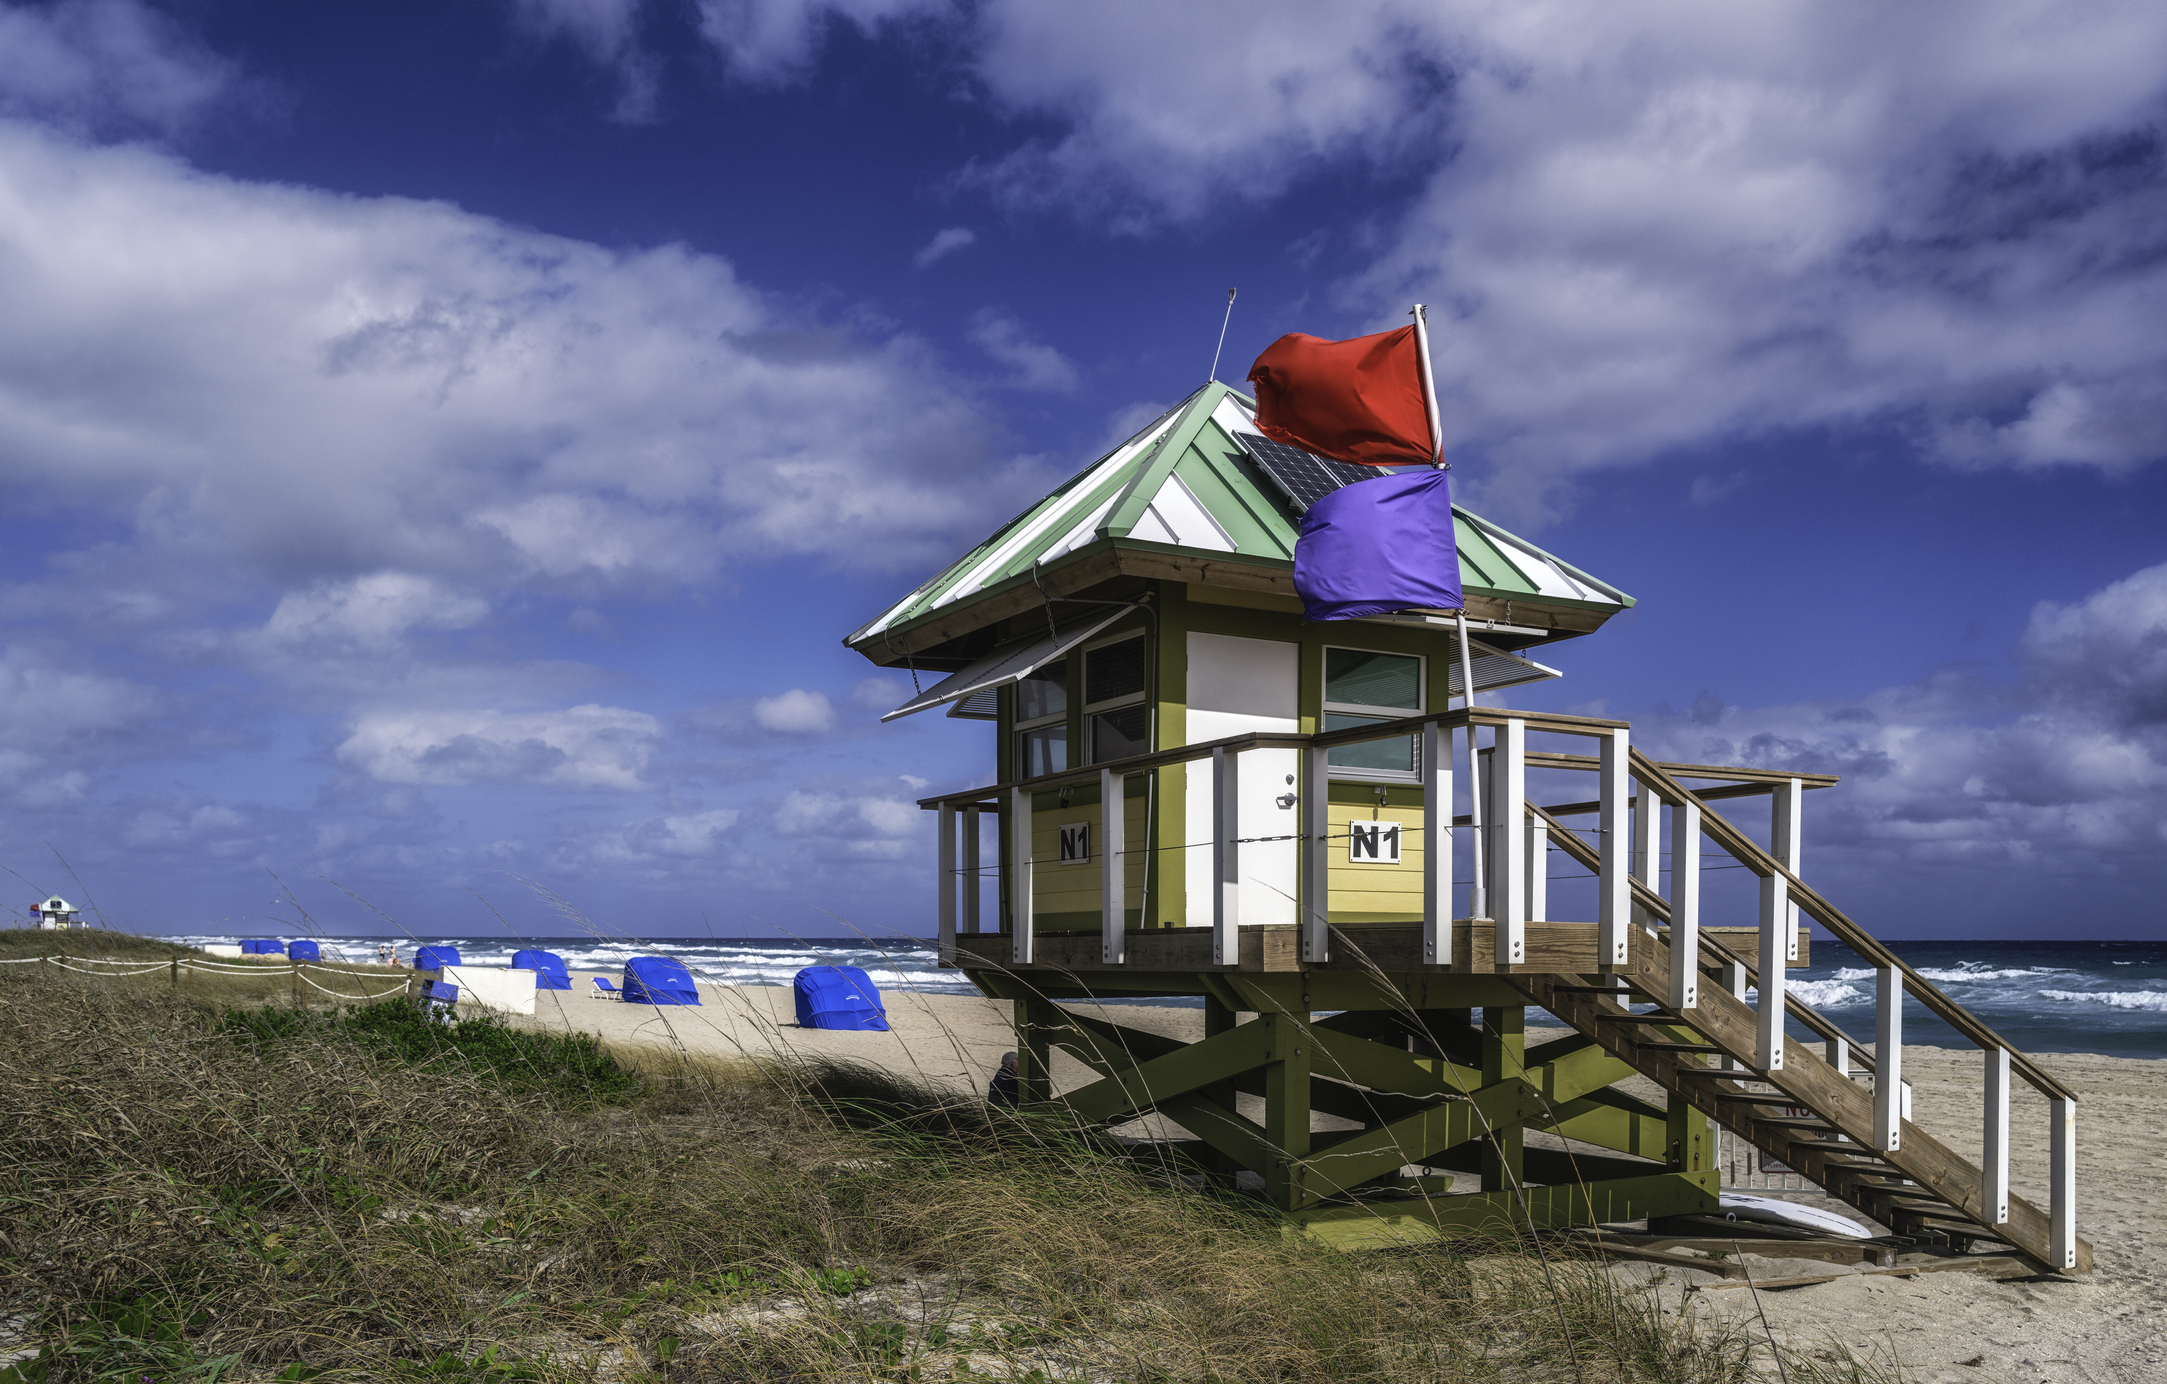 Delray Beach Lifeguard Hut